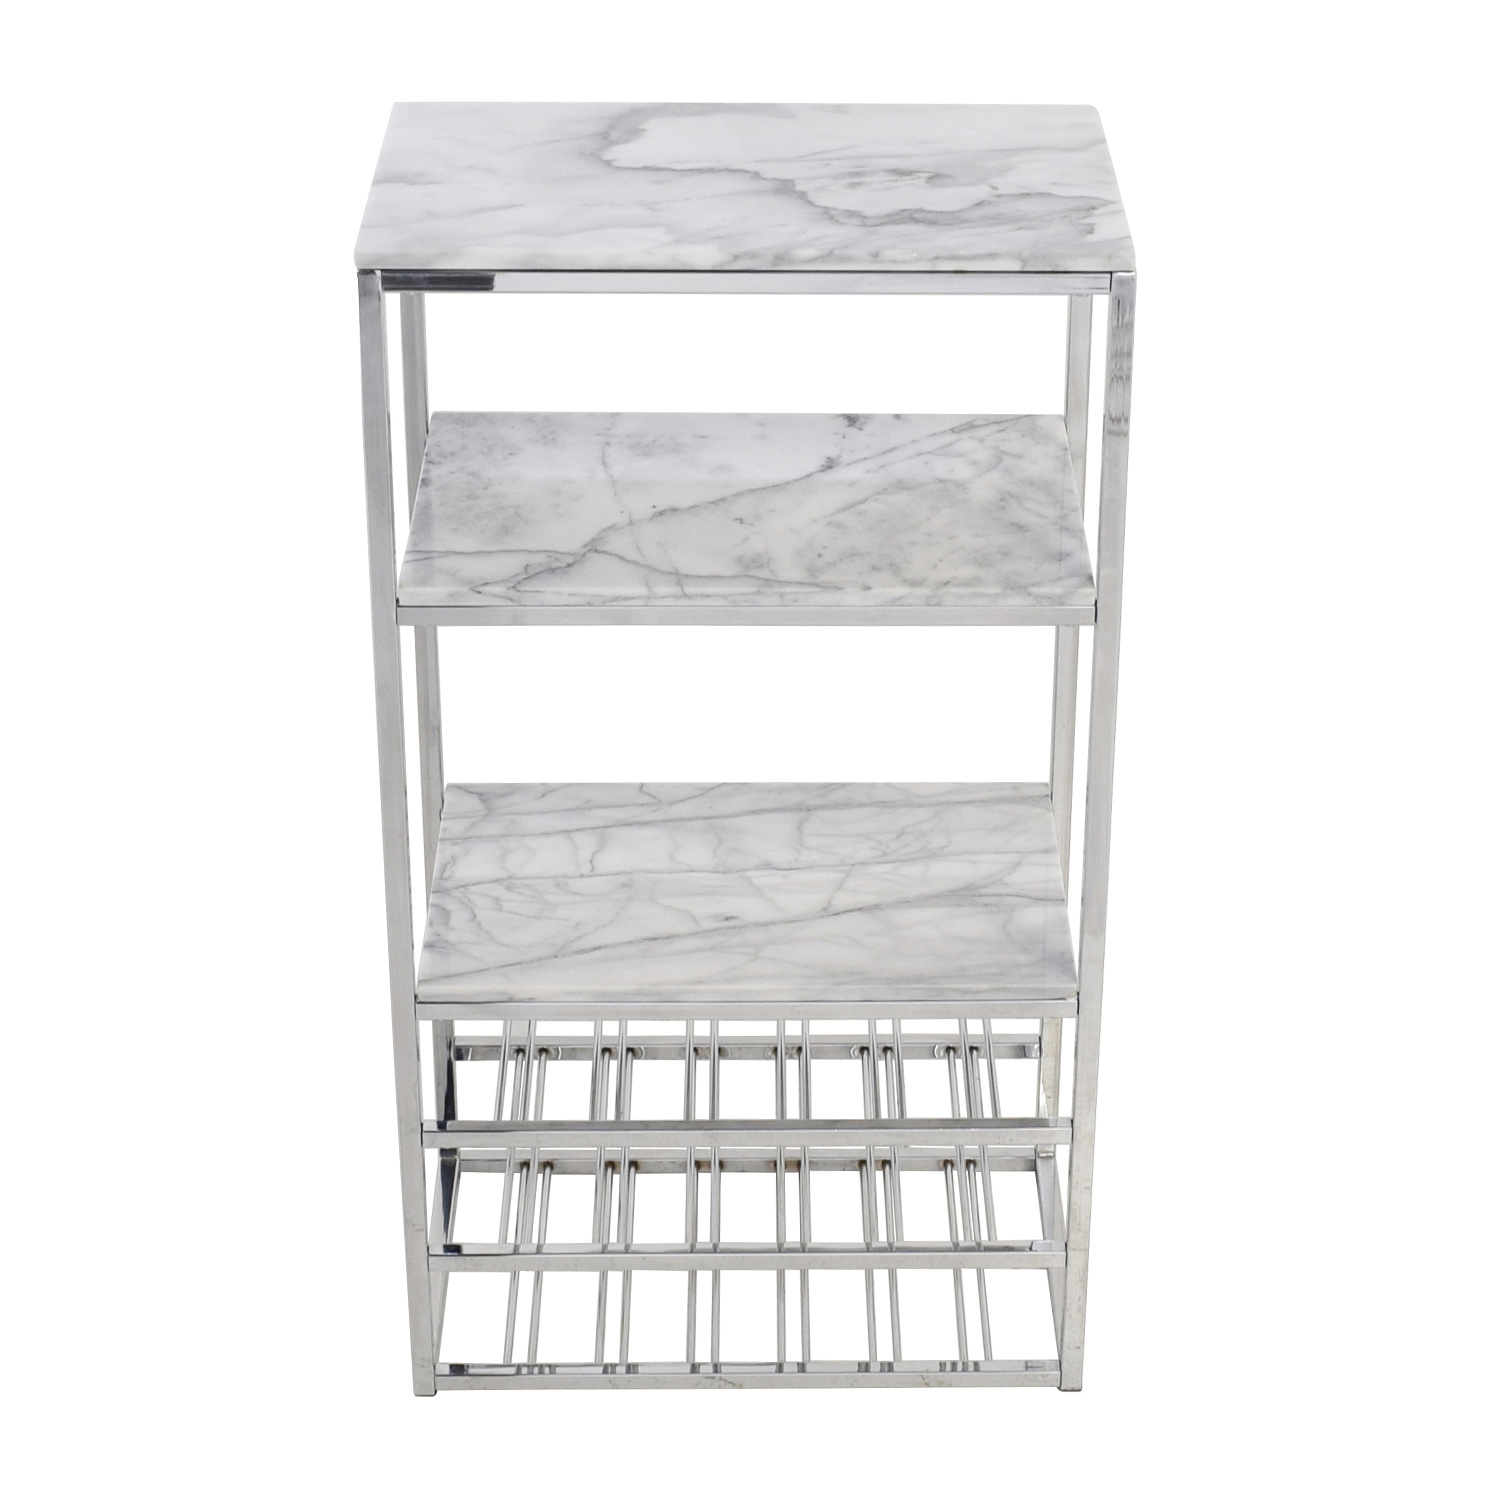 Crate and Barrel Crate & Barrel Marble and Silver Chrome Wine Rack Tables